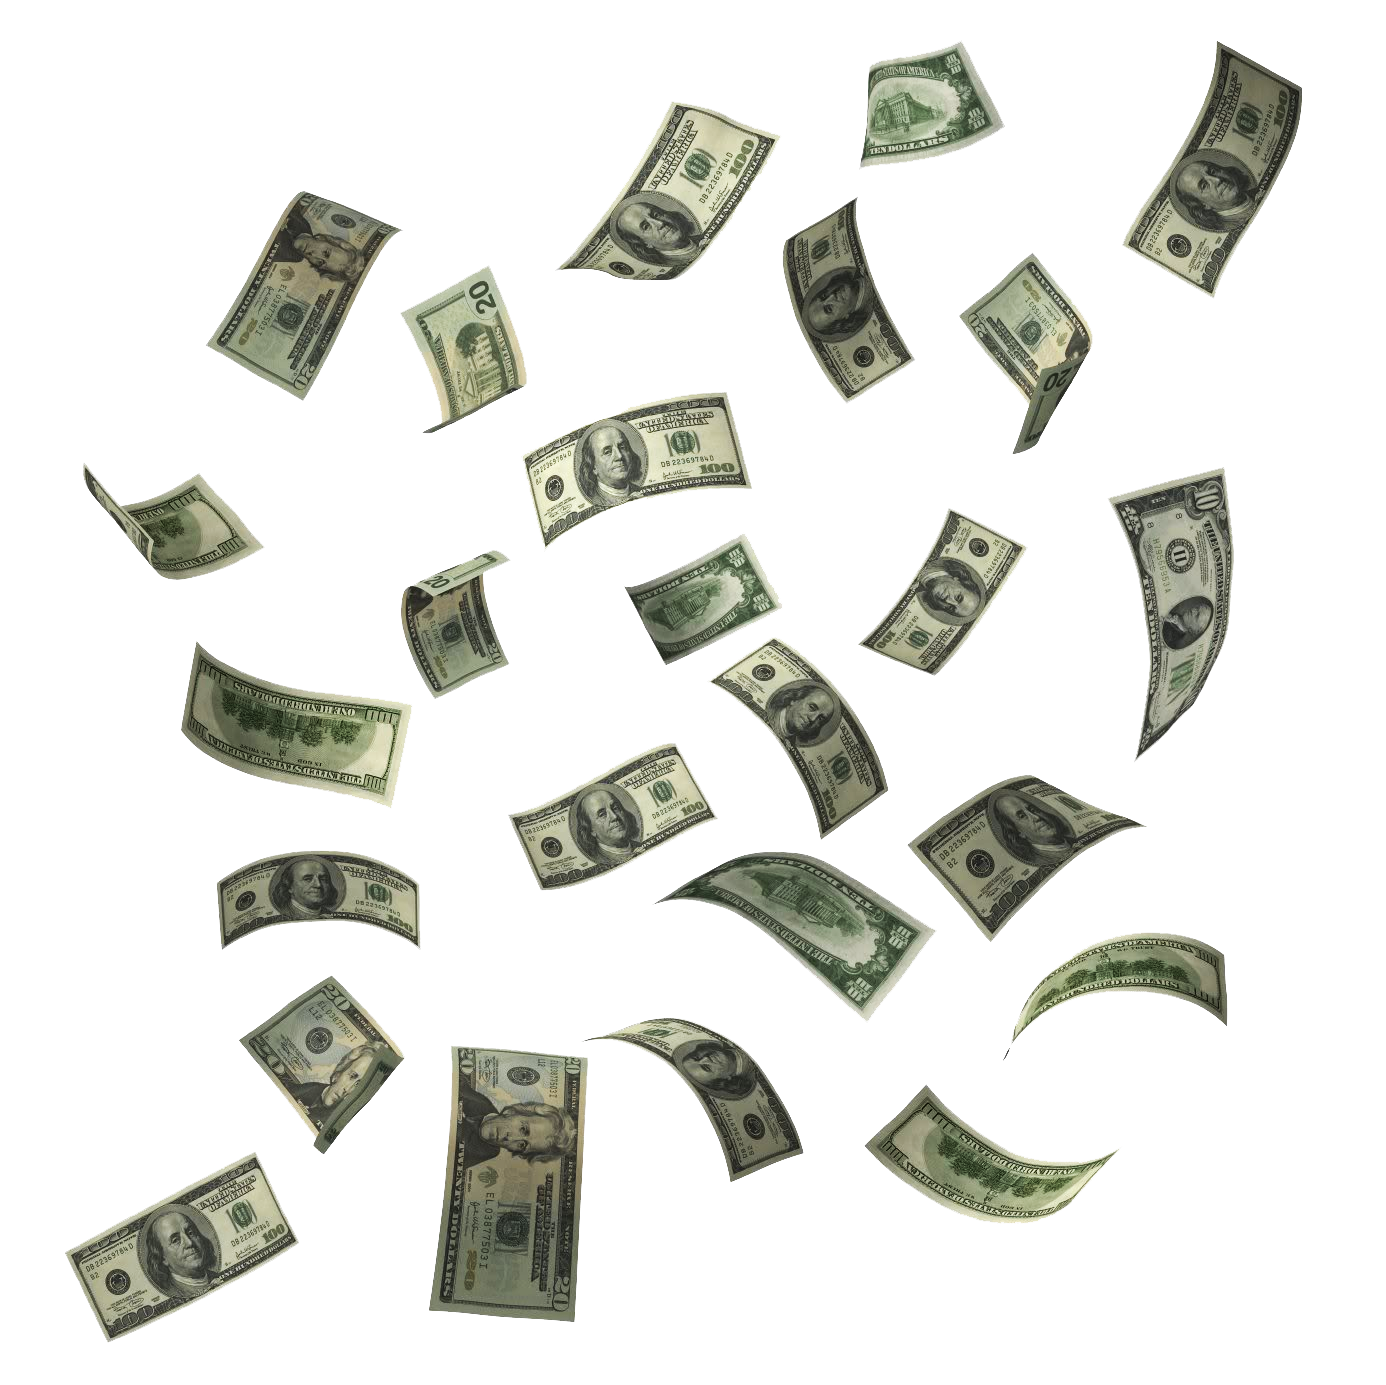 Dollar bills falling png. Make money hd image